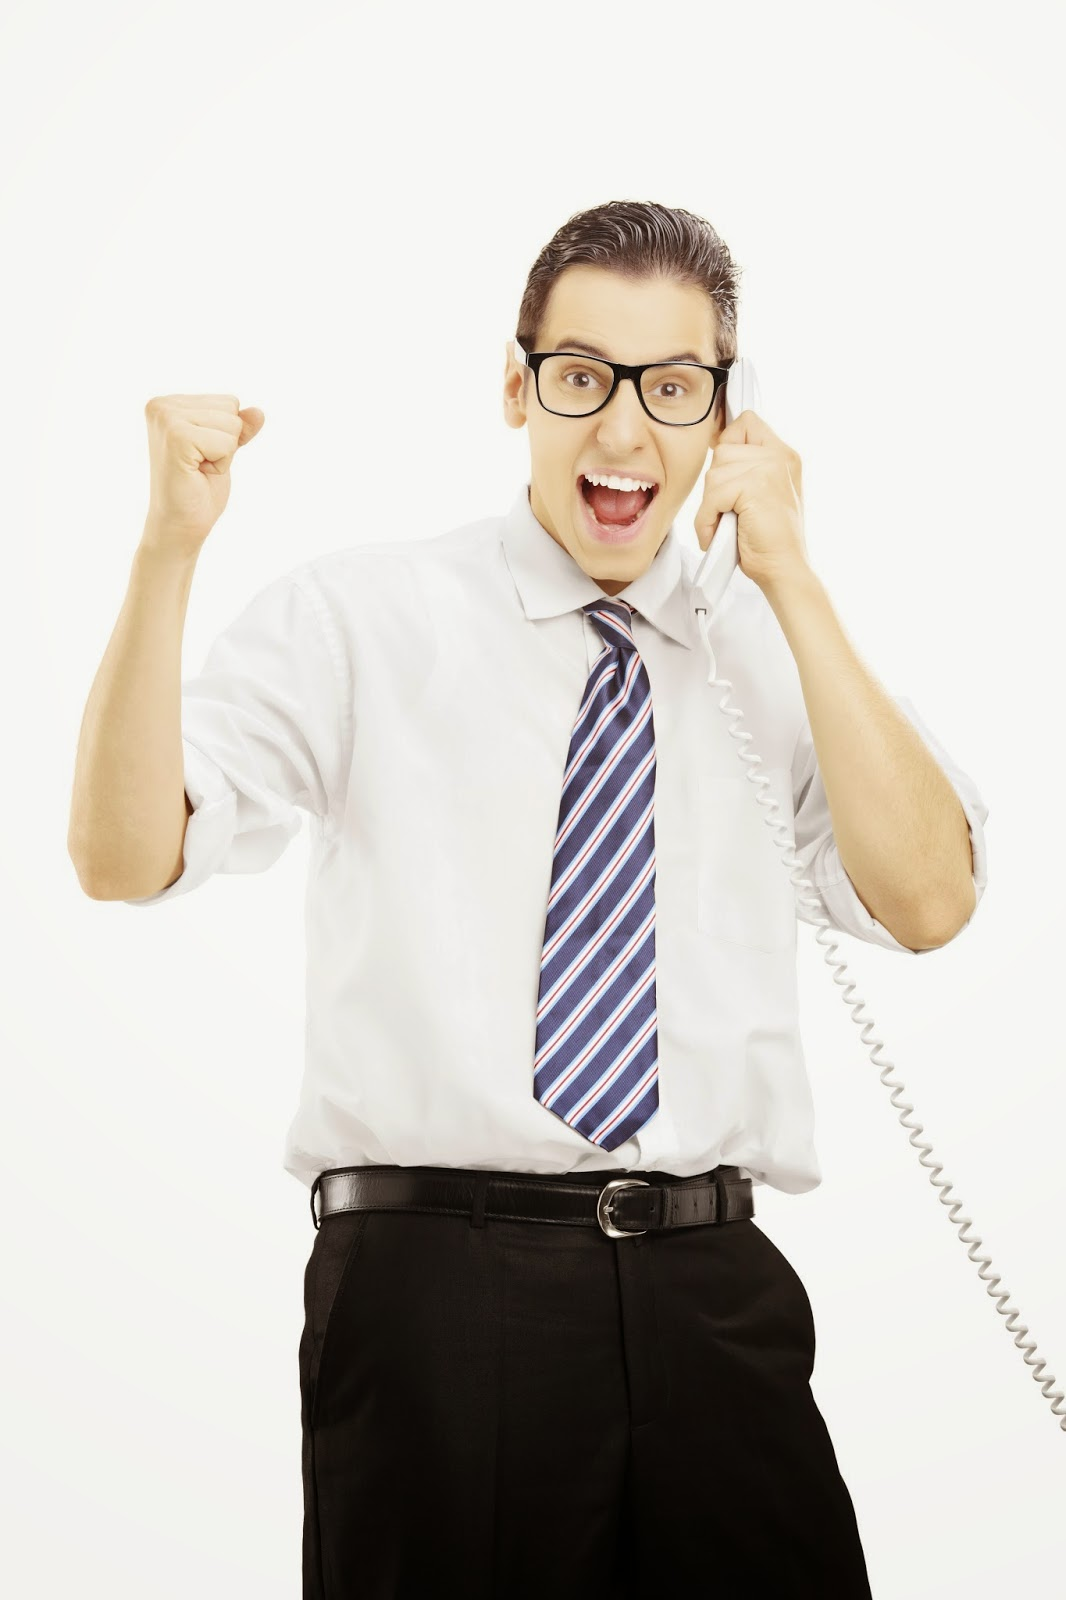 Excited businessman on the phone